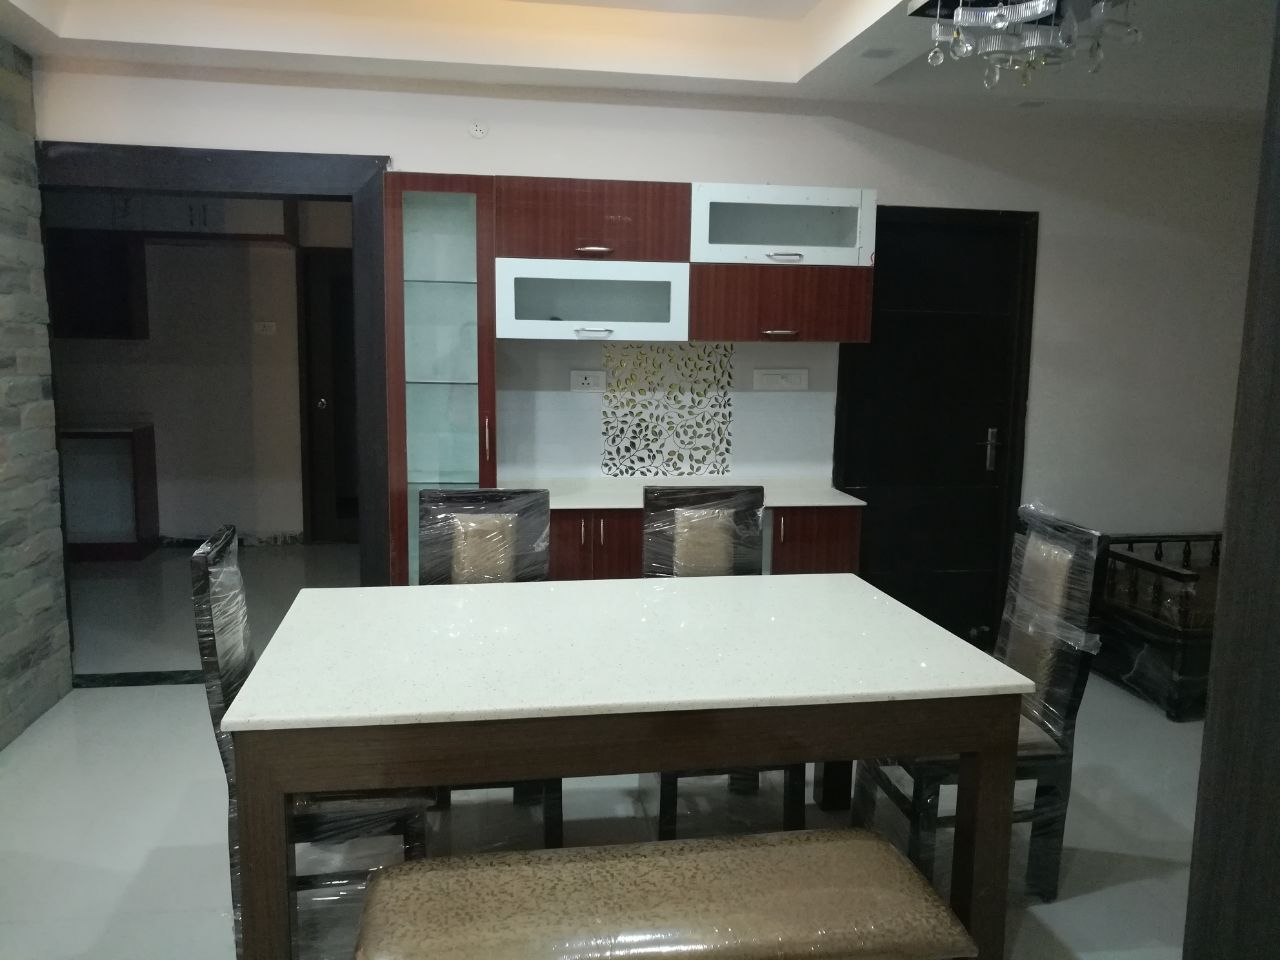 R7 INTERIORS, 2 BHK INTERIORS IN HYDERABAD, 2 BHK INTERIORS IN UPPAL, 2 BHK INTERIORS IN MANIKONDA, 2 BHK INTERIORS IN L B NAGAR, 2 BHK INTERIORS IN TOLICHOWKI,